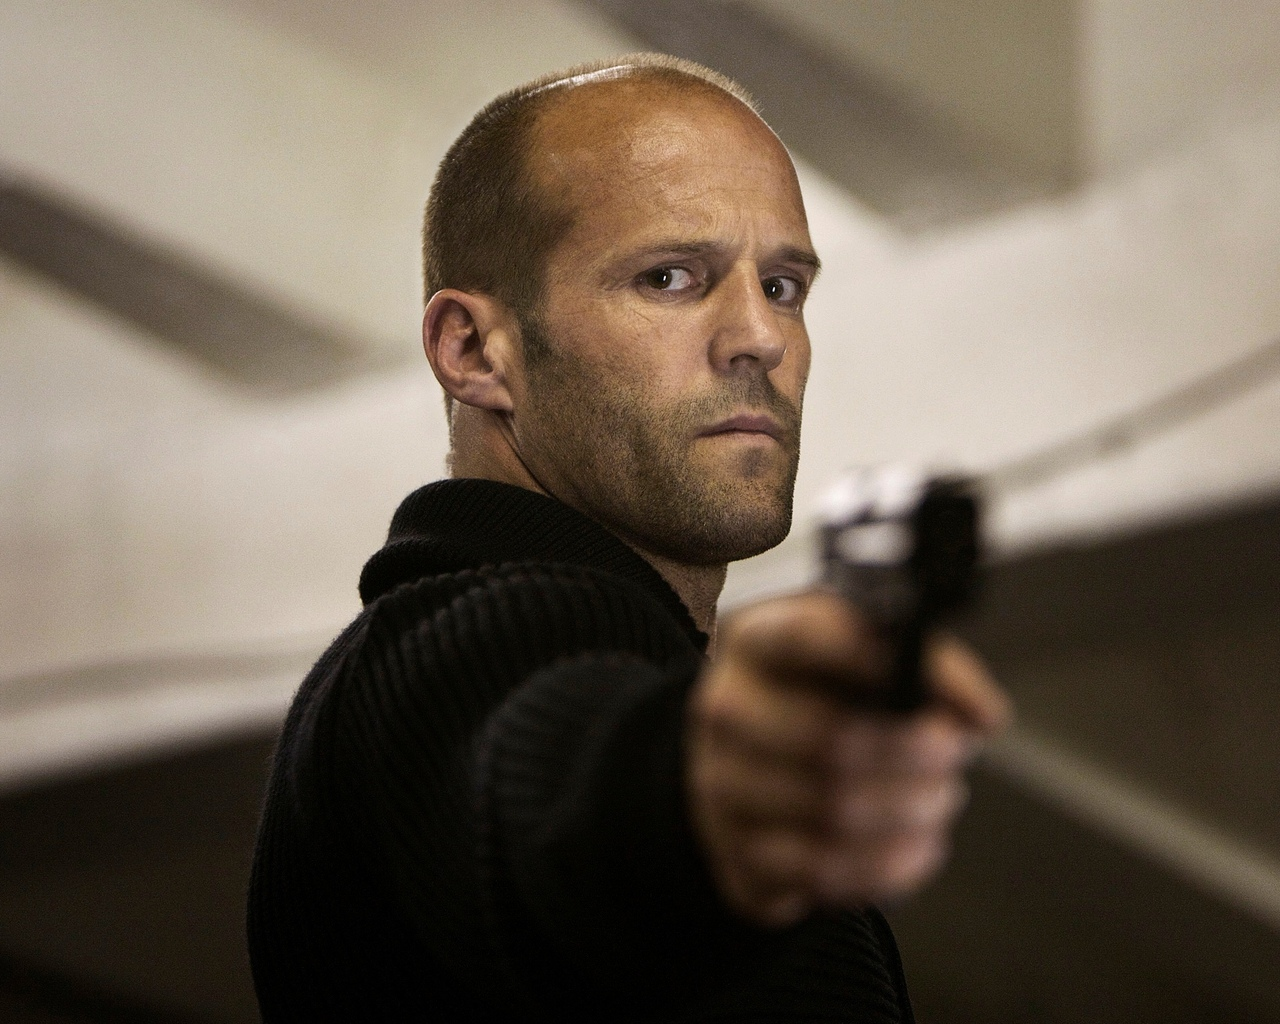 Jason Statham - The Mechanic